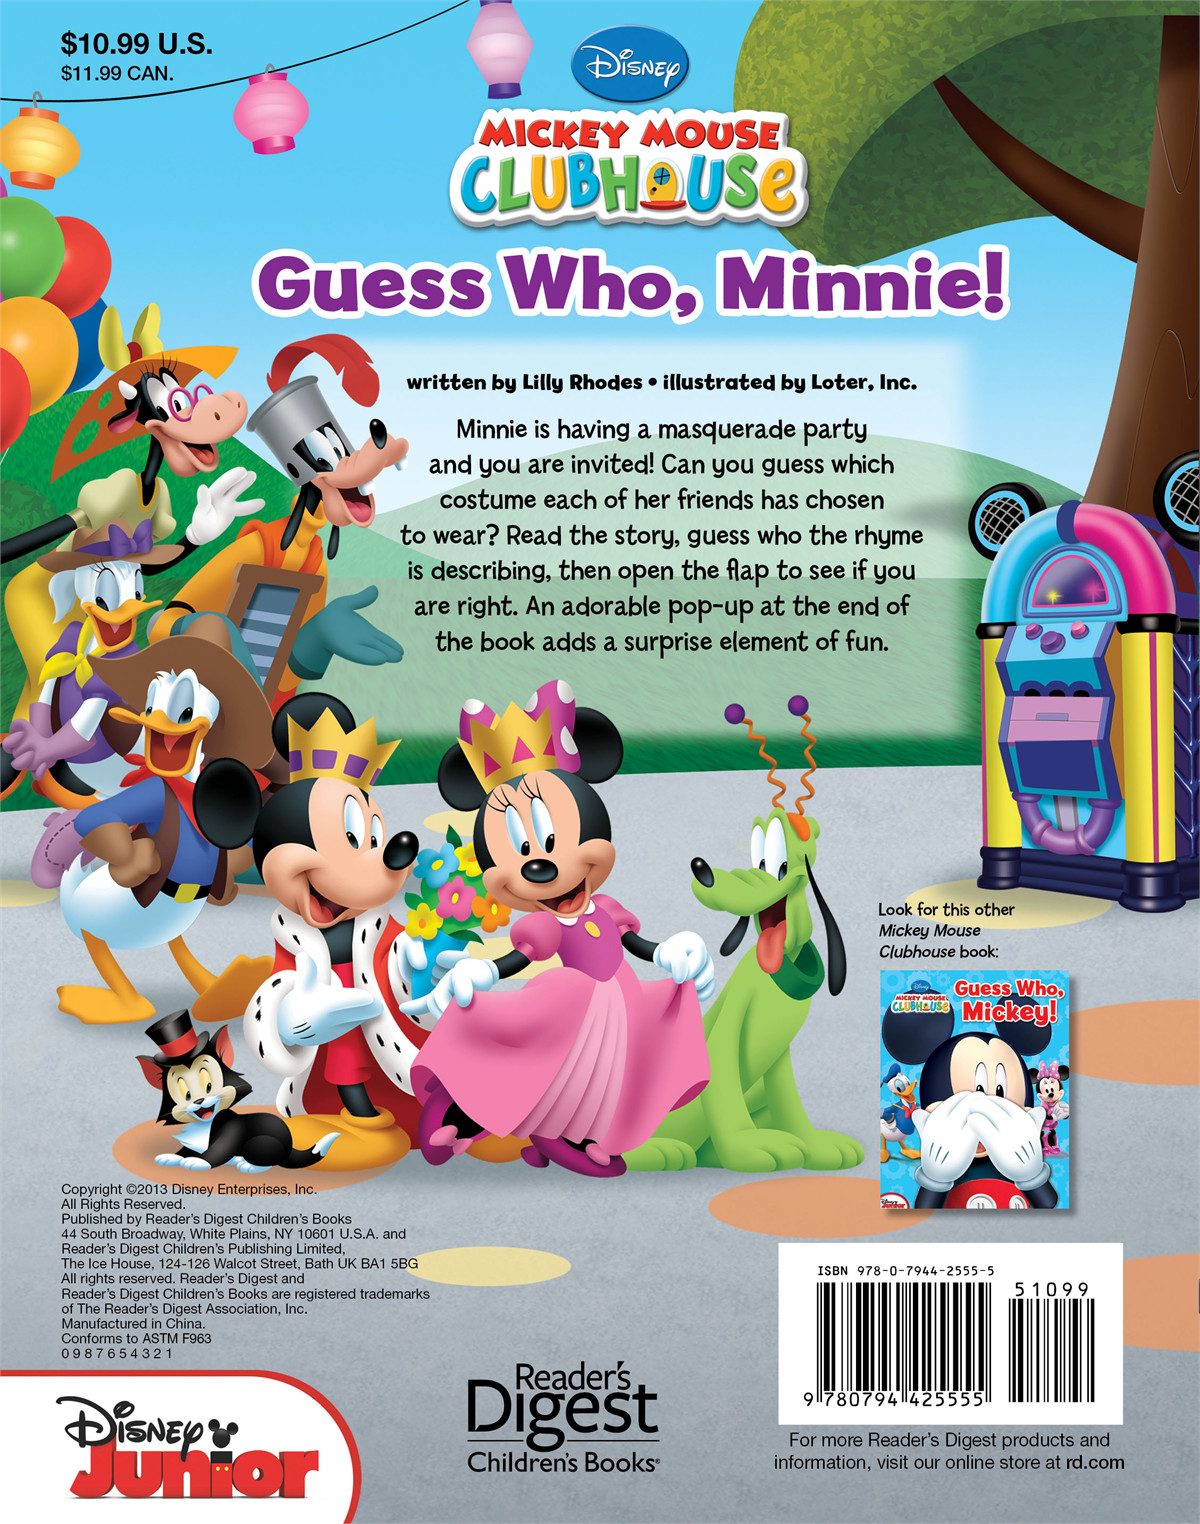 Disney guess who minnie! 9780794425555.in02